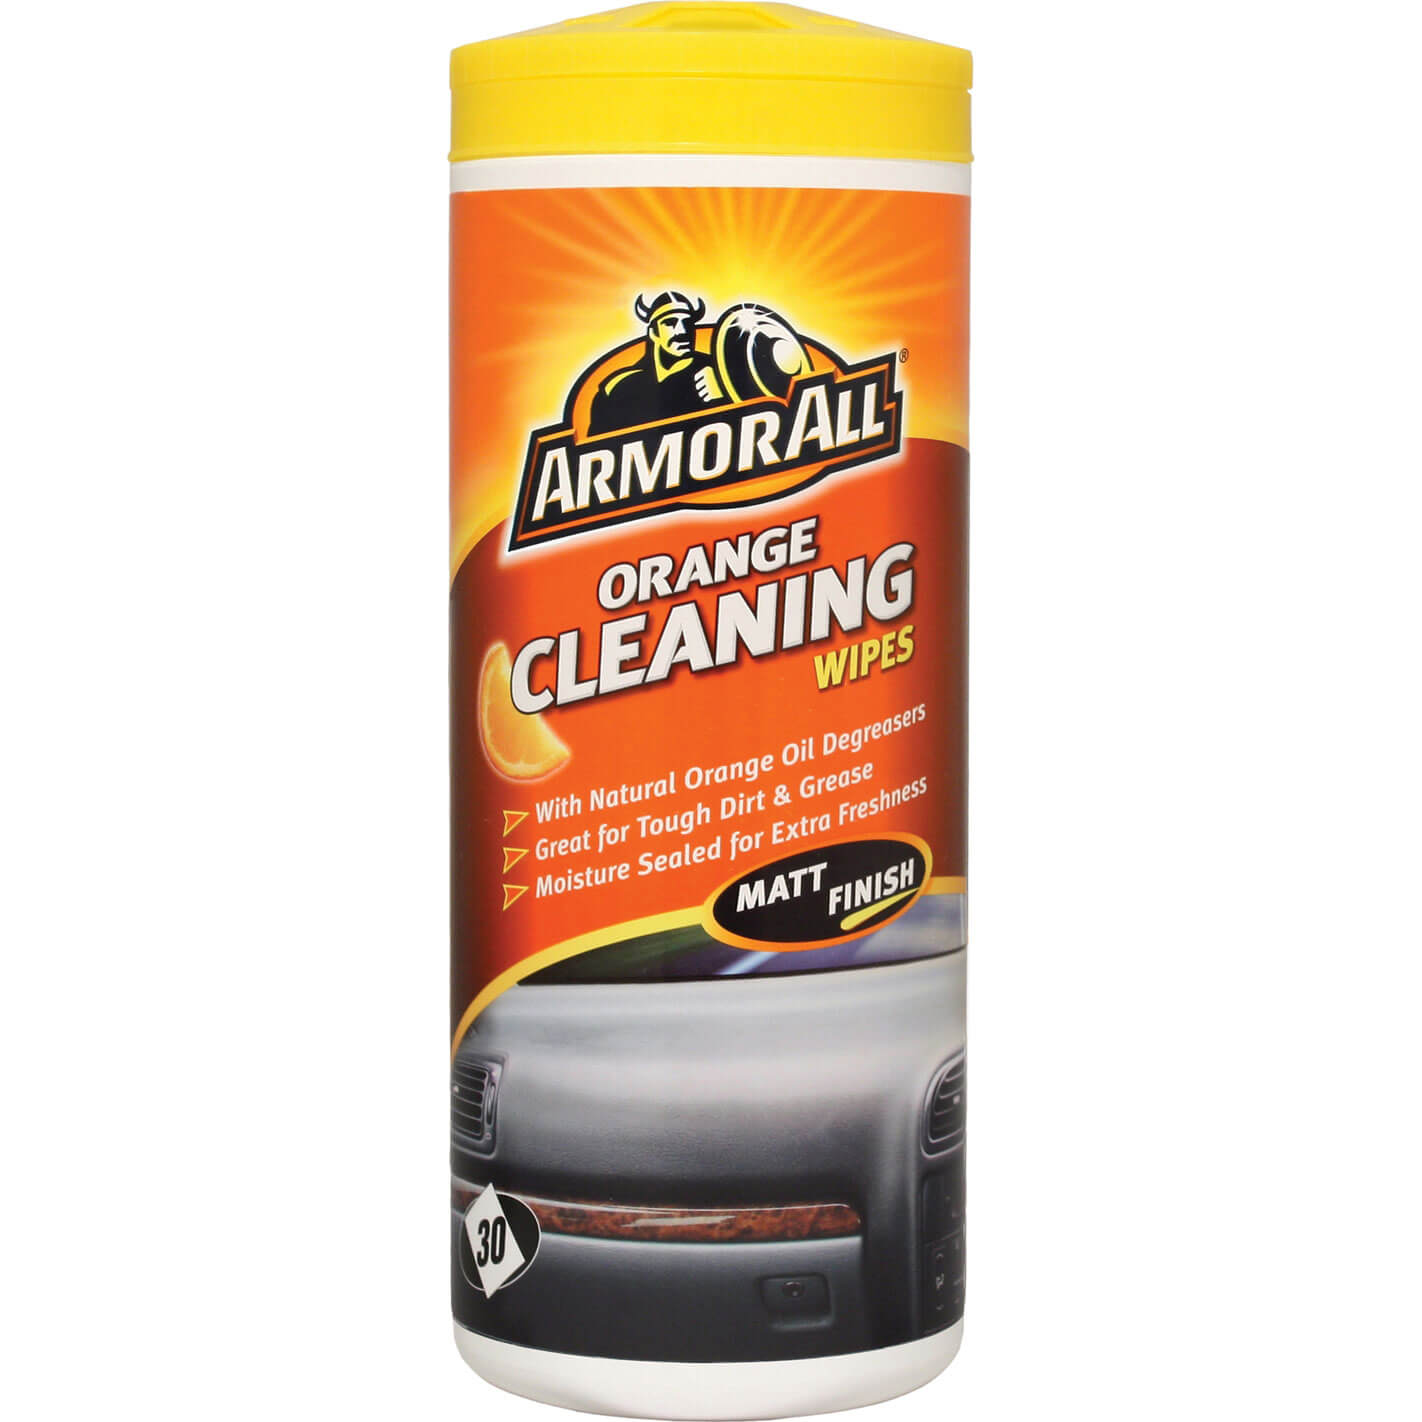 armorall orange interior car cleaning wipes. Black Bedroom Furniture Sets. Home Design Ideas